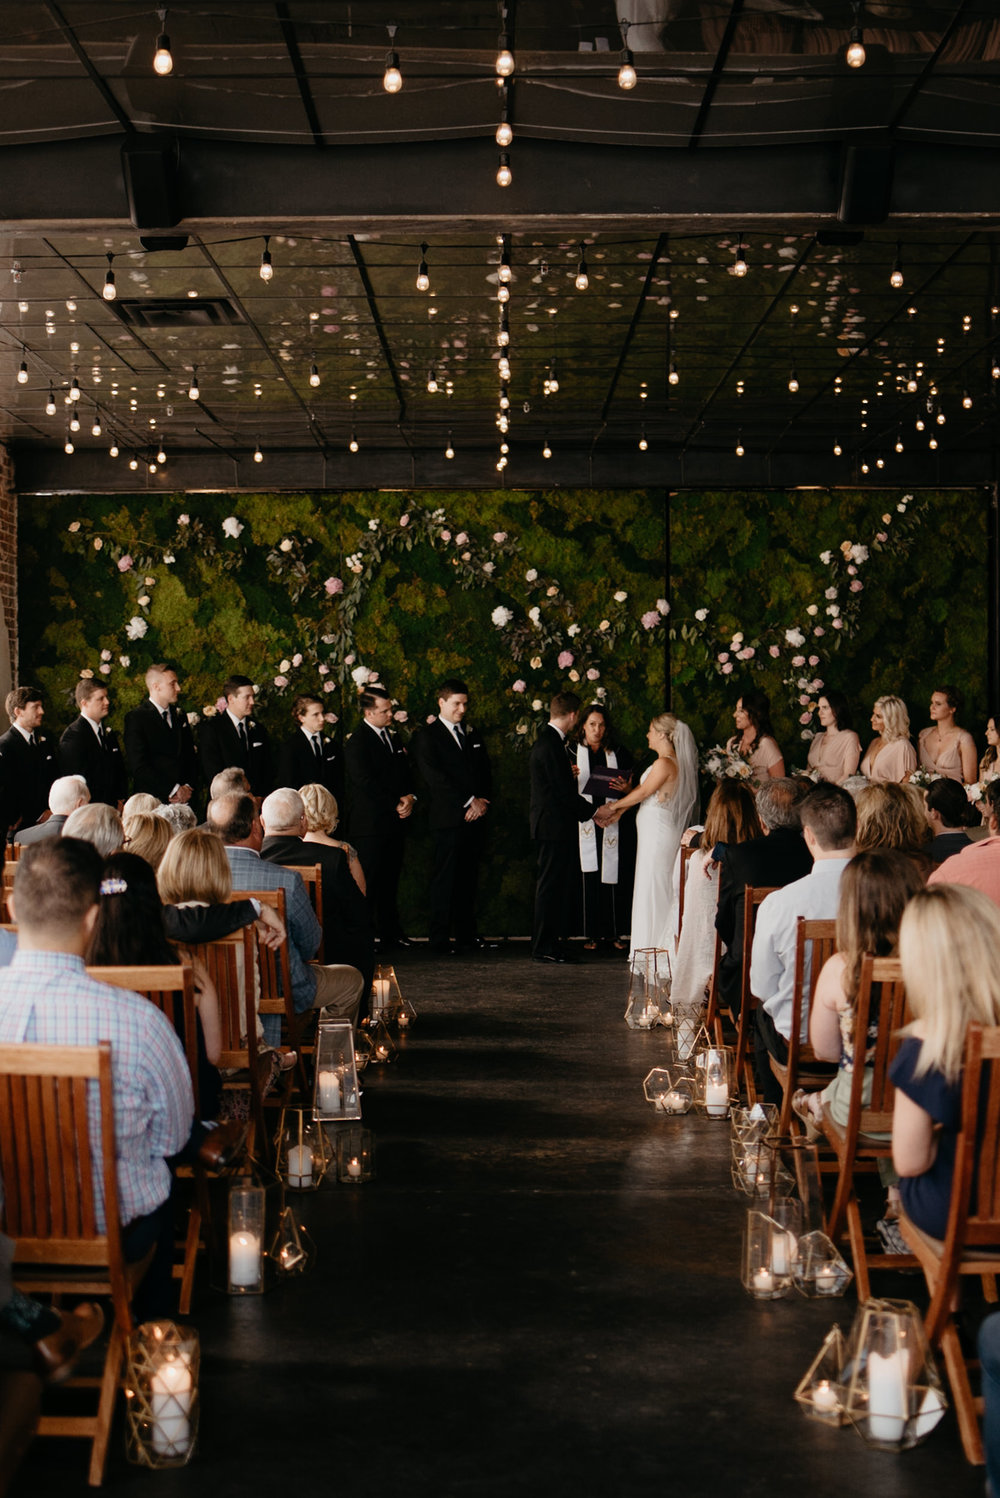 Denver city wedding ceremony at Moss. Denver wedding venue.